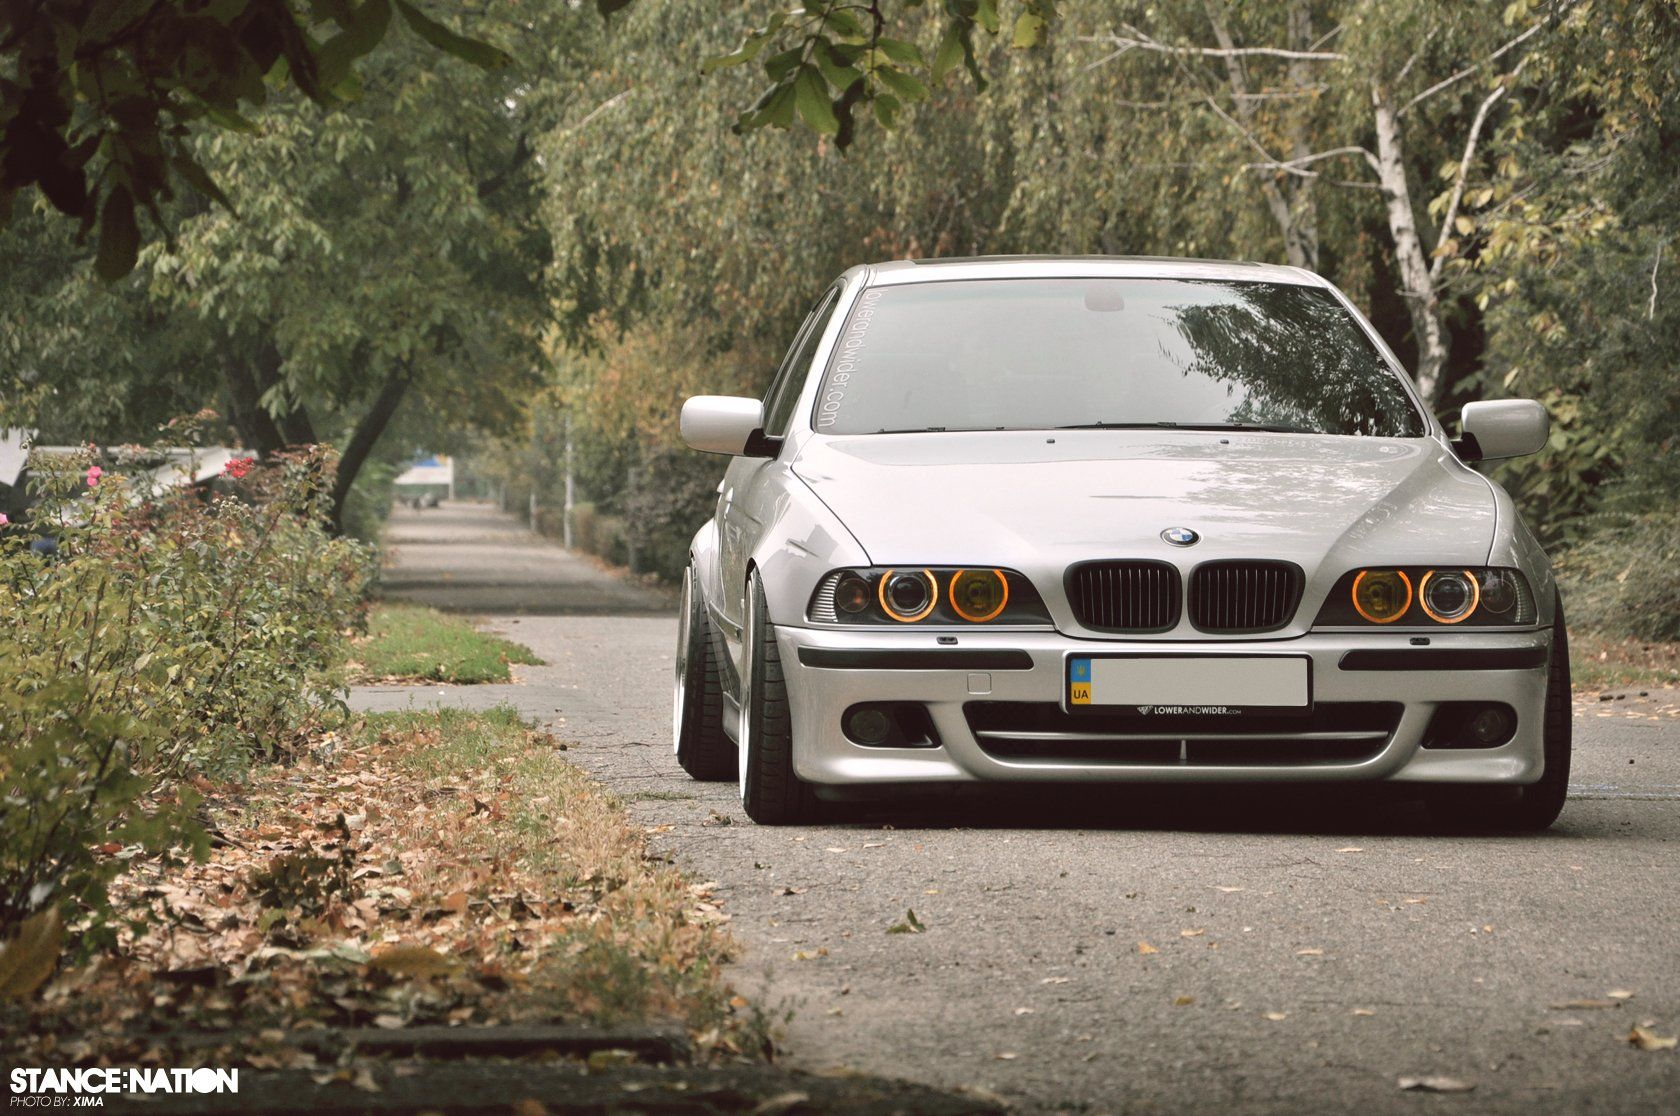 Bmw E39 Tuning Wallpapers Trp Yahoo Image Search Results